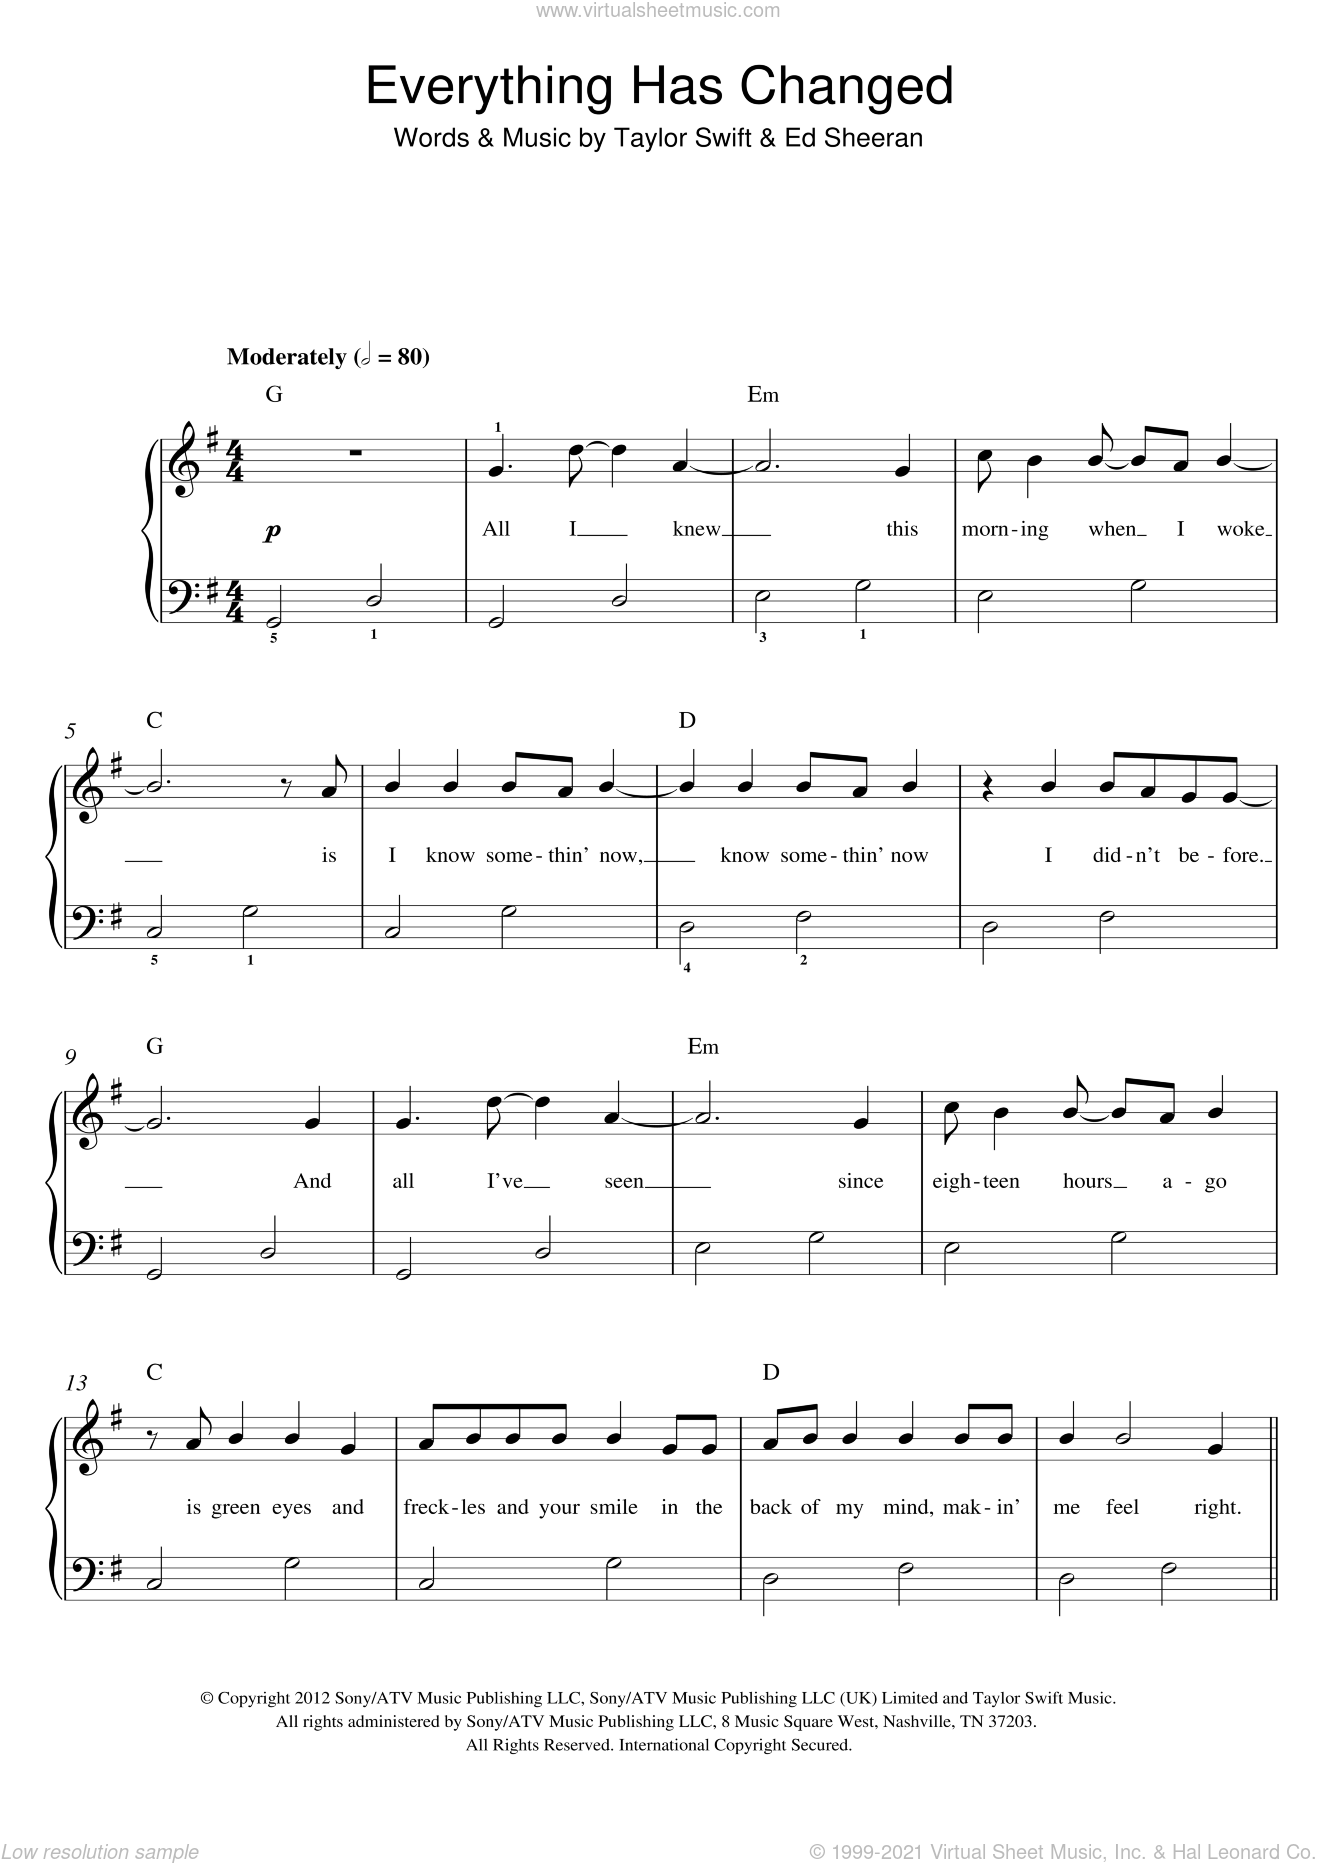 Everything Has Changed sheet music for piano solo by Taylor Swift and Ed Sheeran, easy skill level